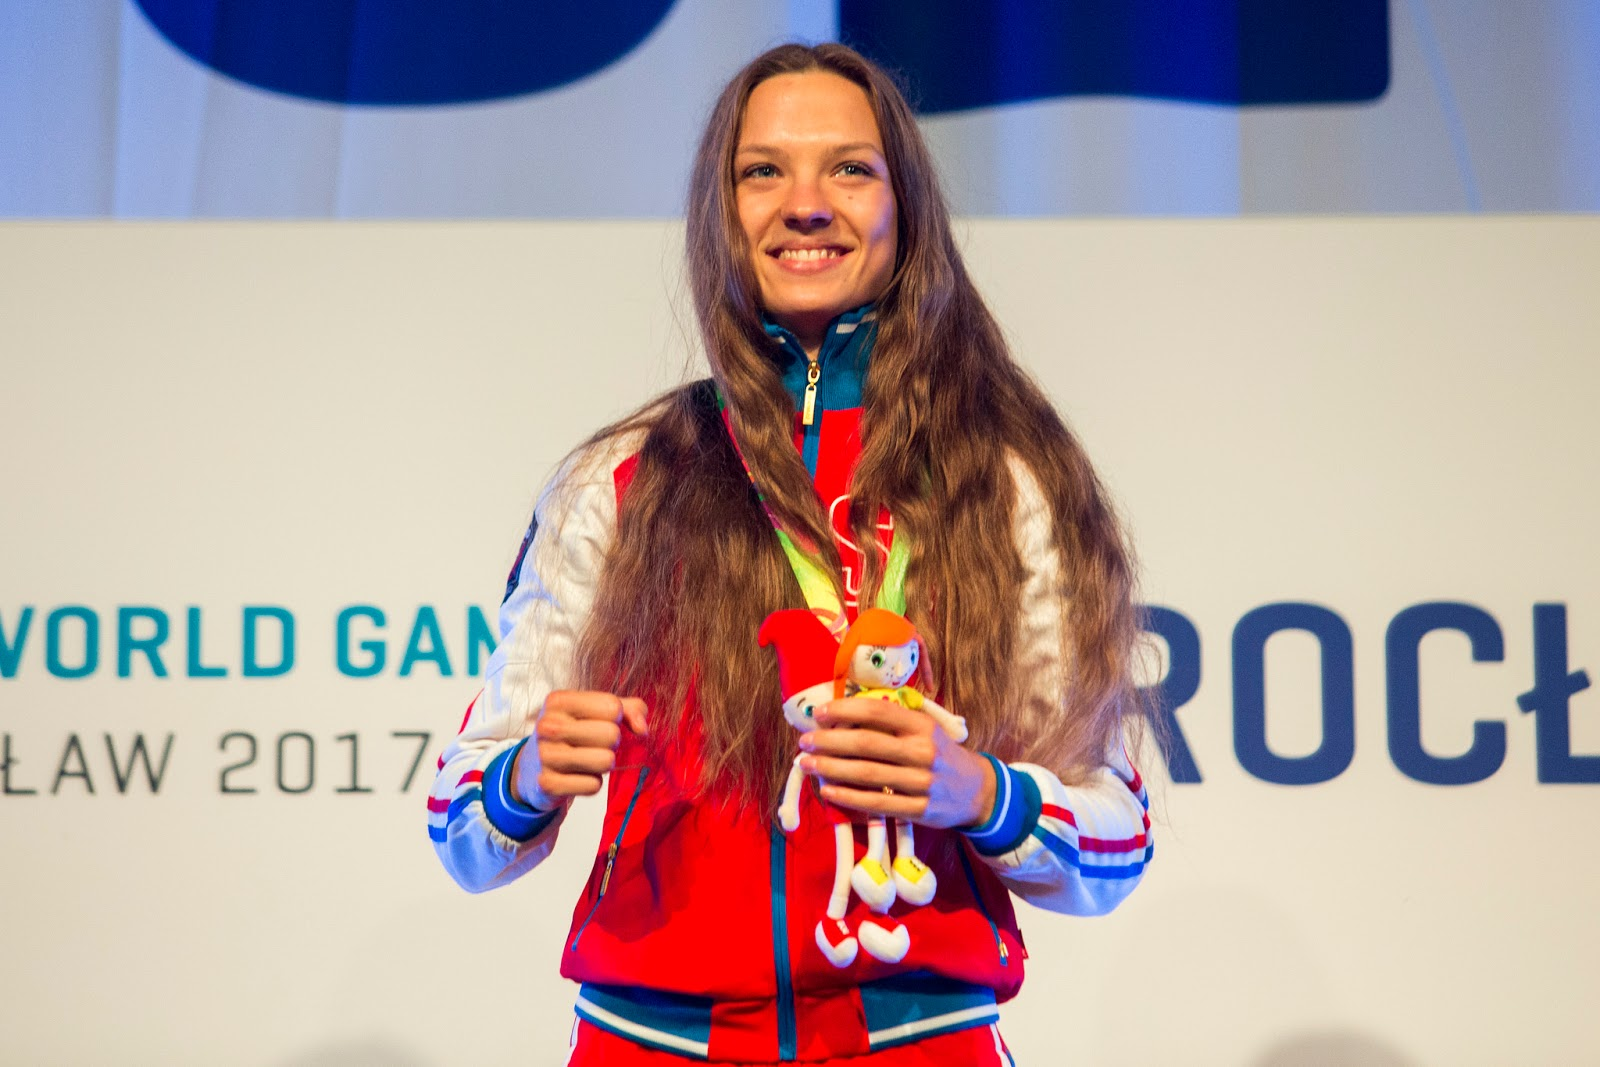 Svetlana Vinnikova a nominee for IWGA Athlete of the Year